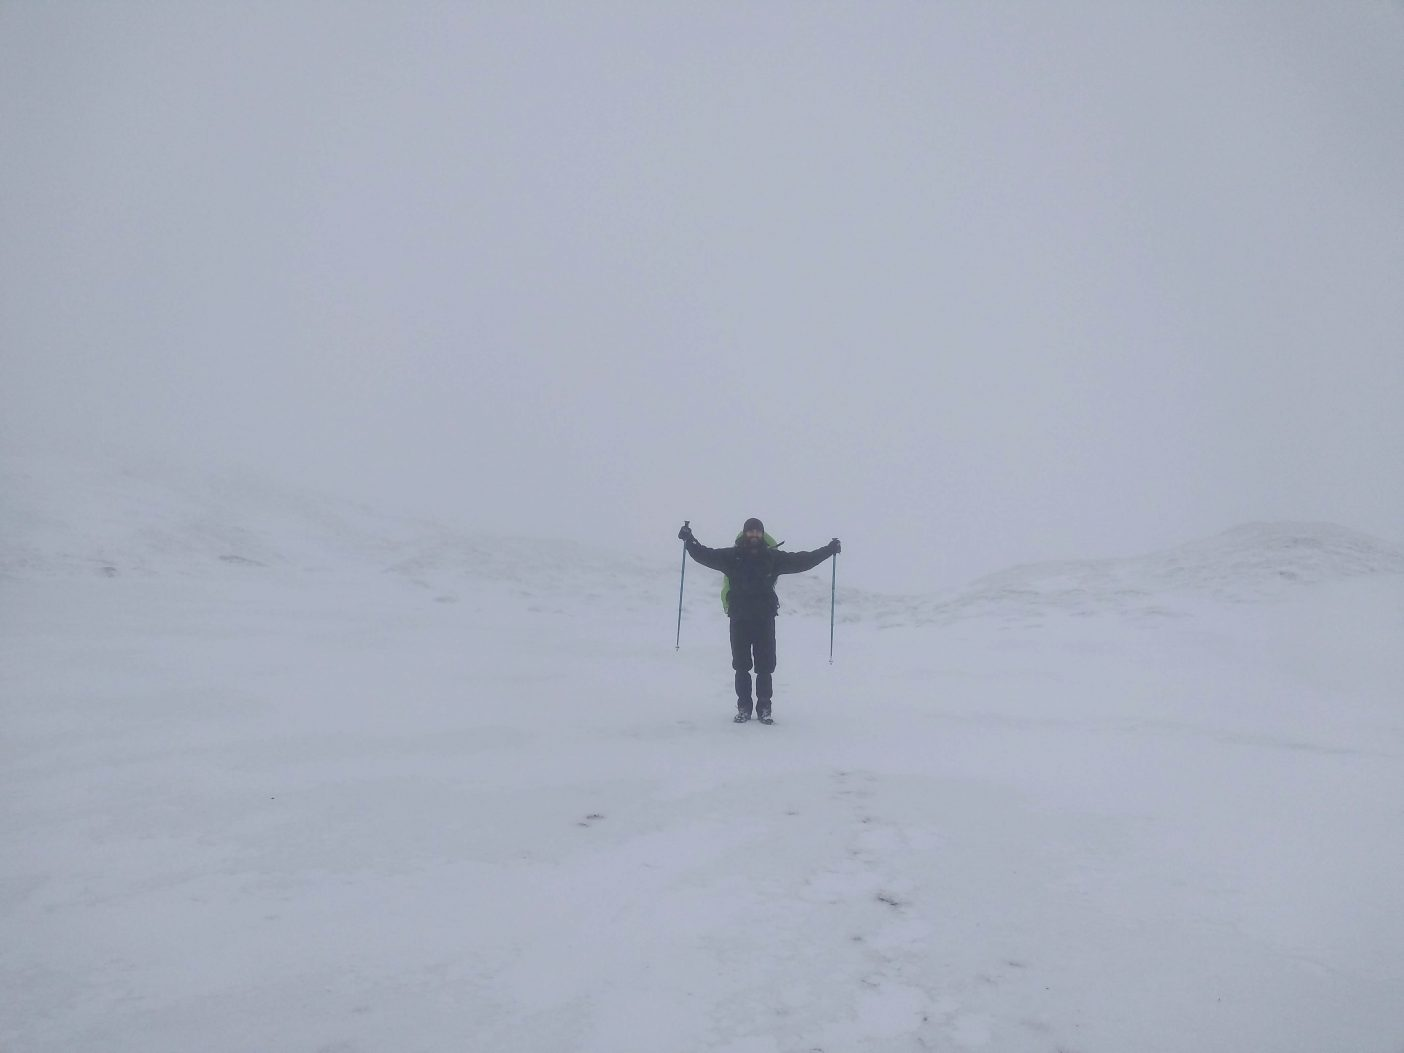 Man hiking in snow in whiteout